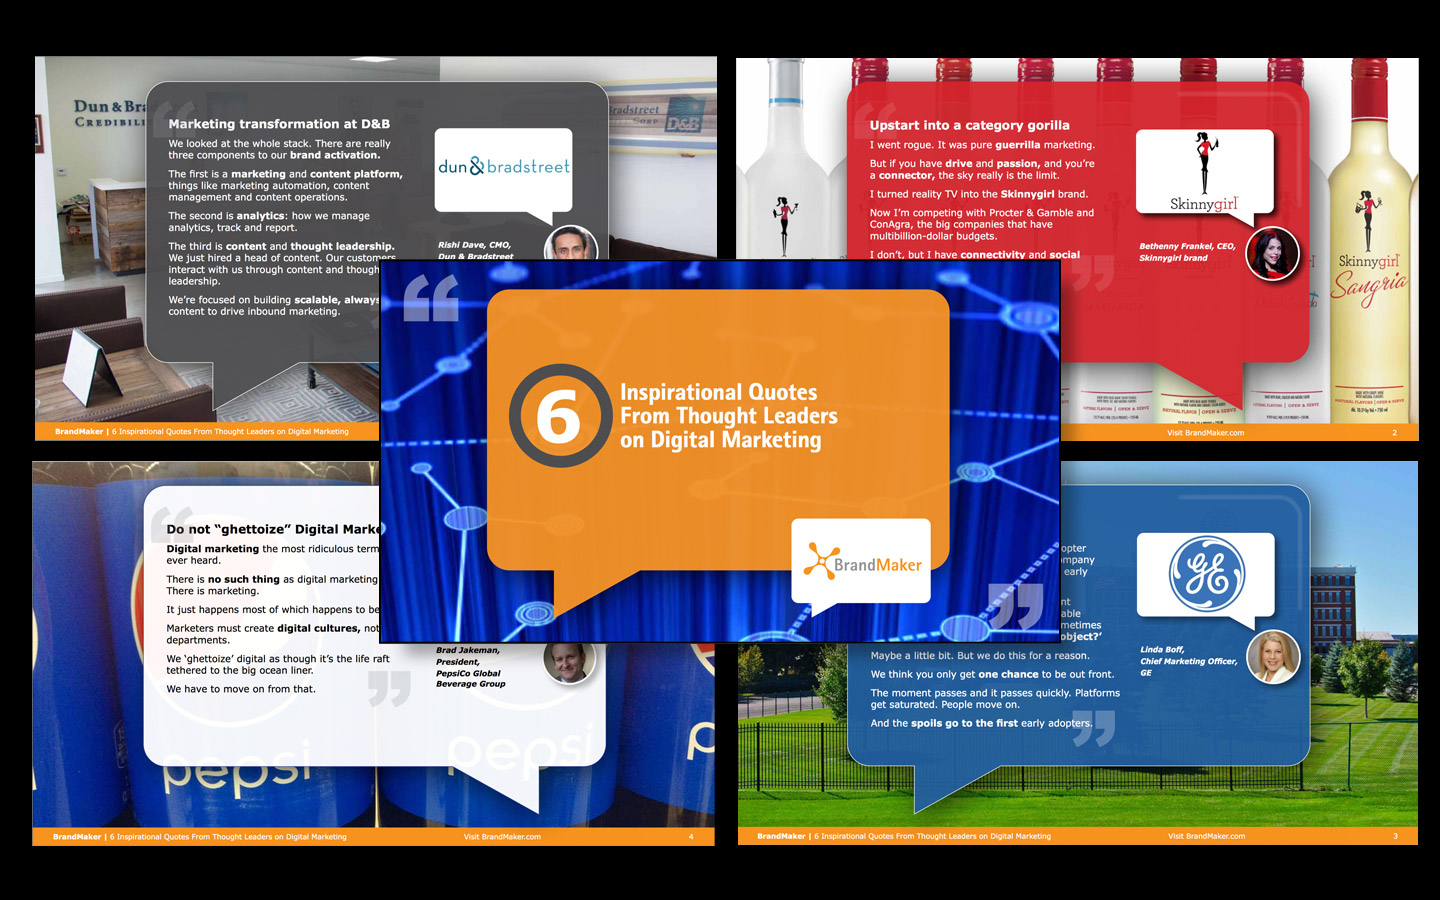 <p>eBrief 7(design and execution for content marketing)</p>